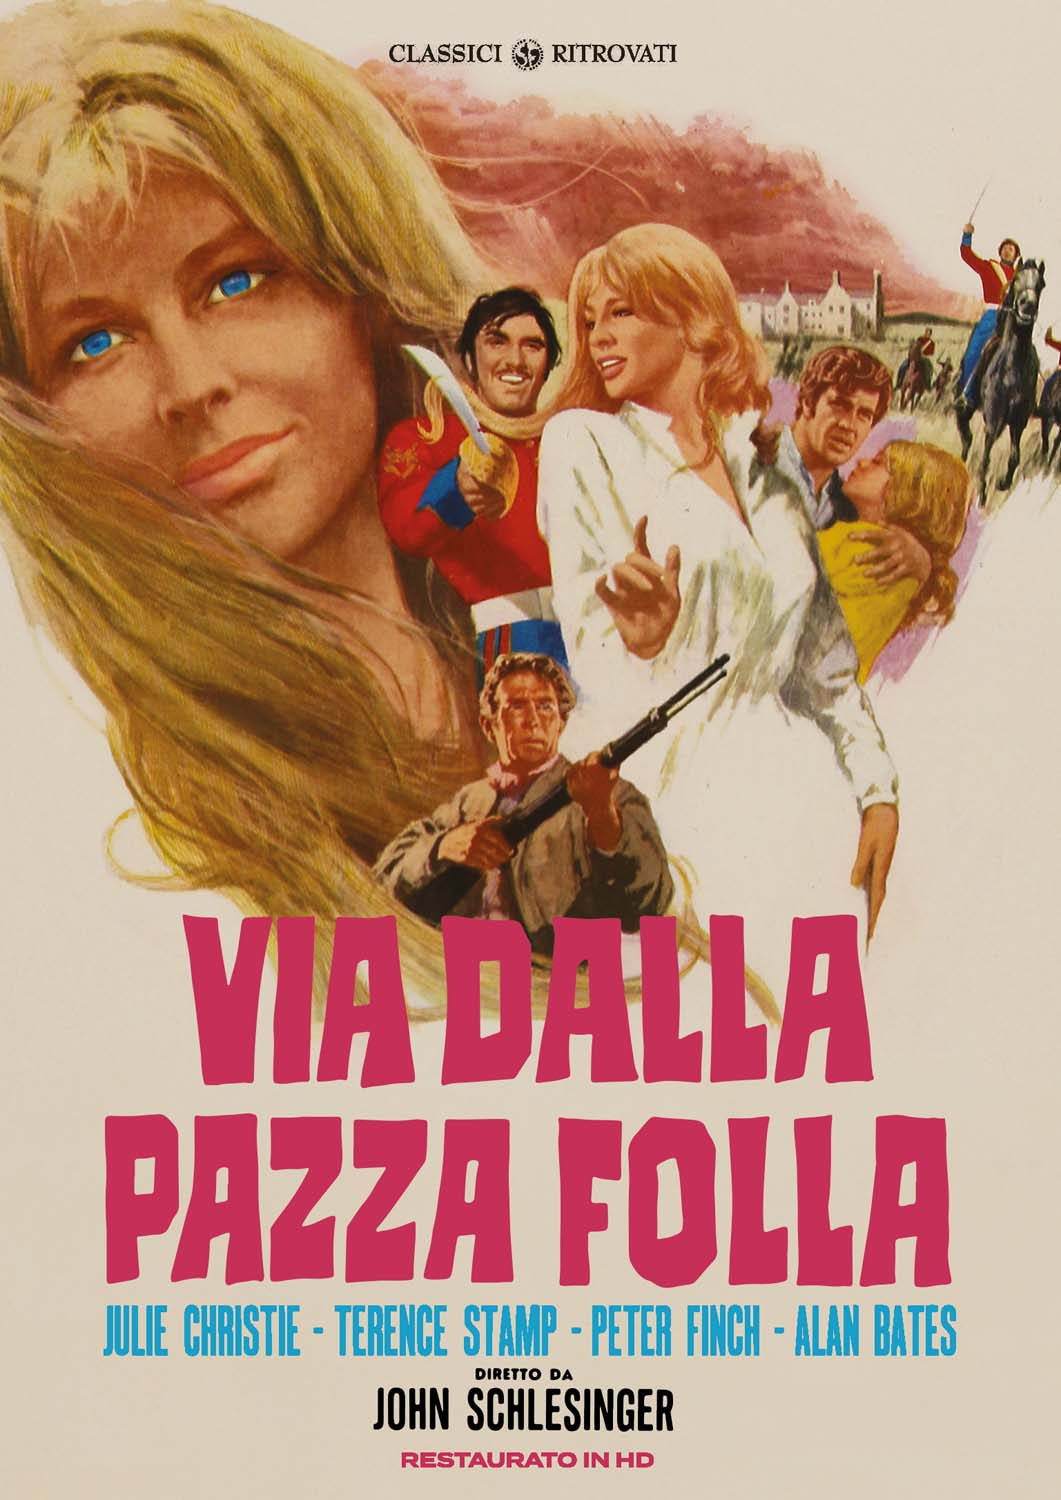 VIA DALLA PAZZA FOLLA (RESTAURATO IN HD) (DVD)